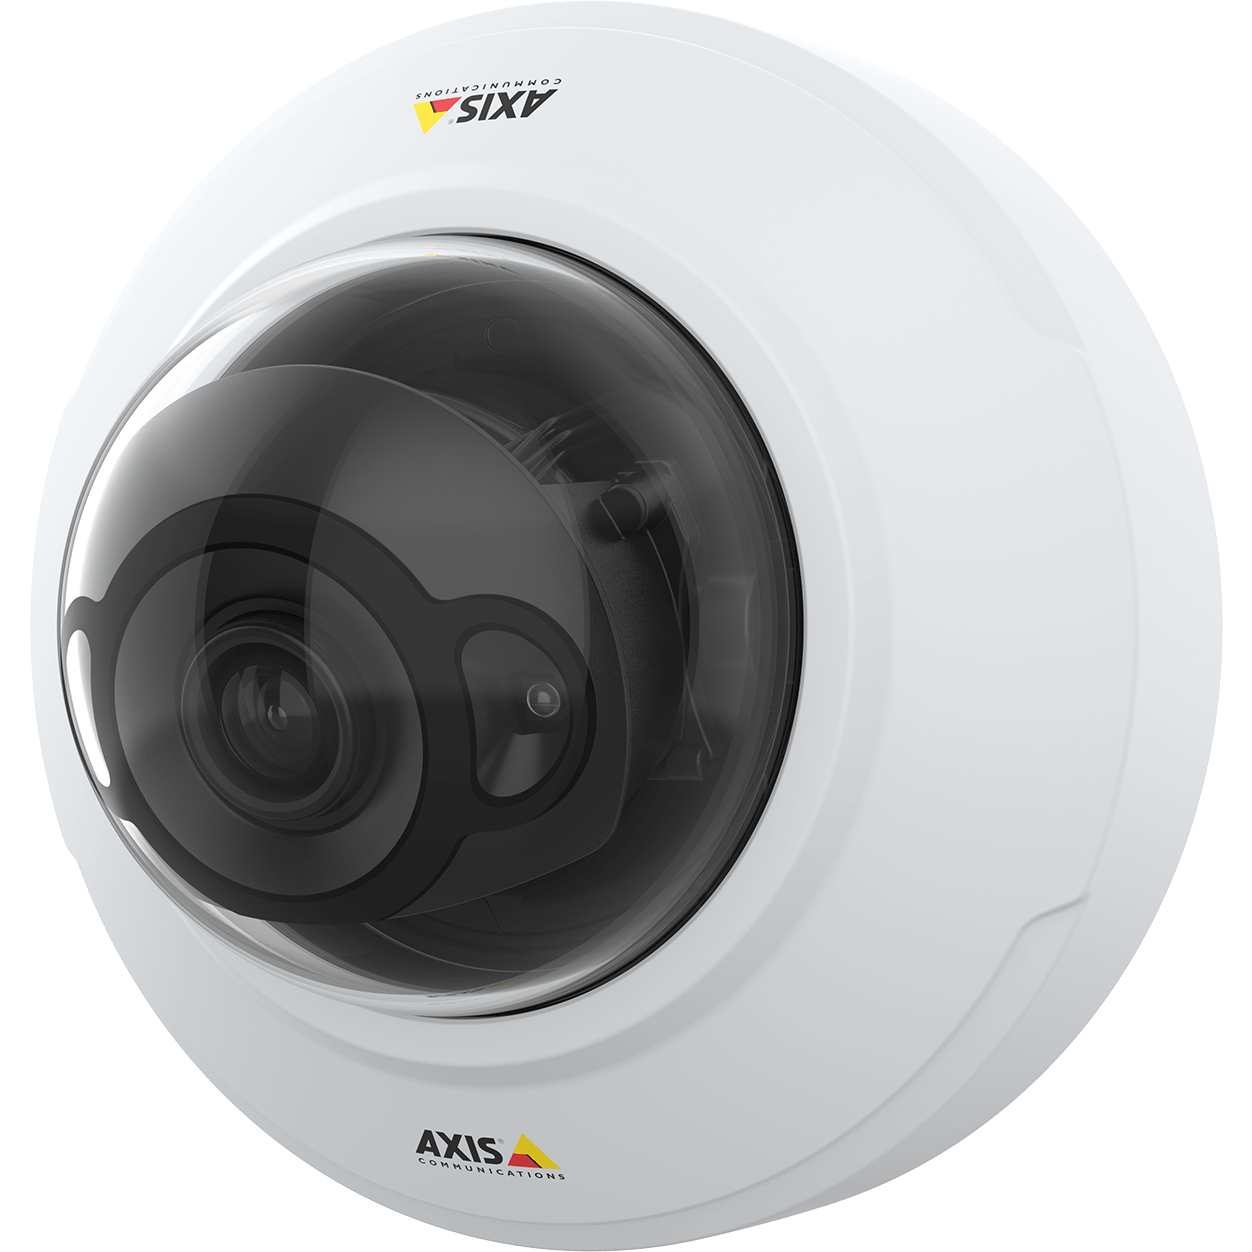 Kabelabdeckung Wand Axis M42 Network Camera Series Axis Communications